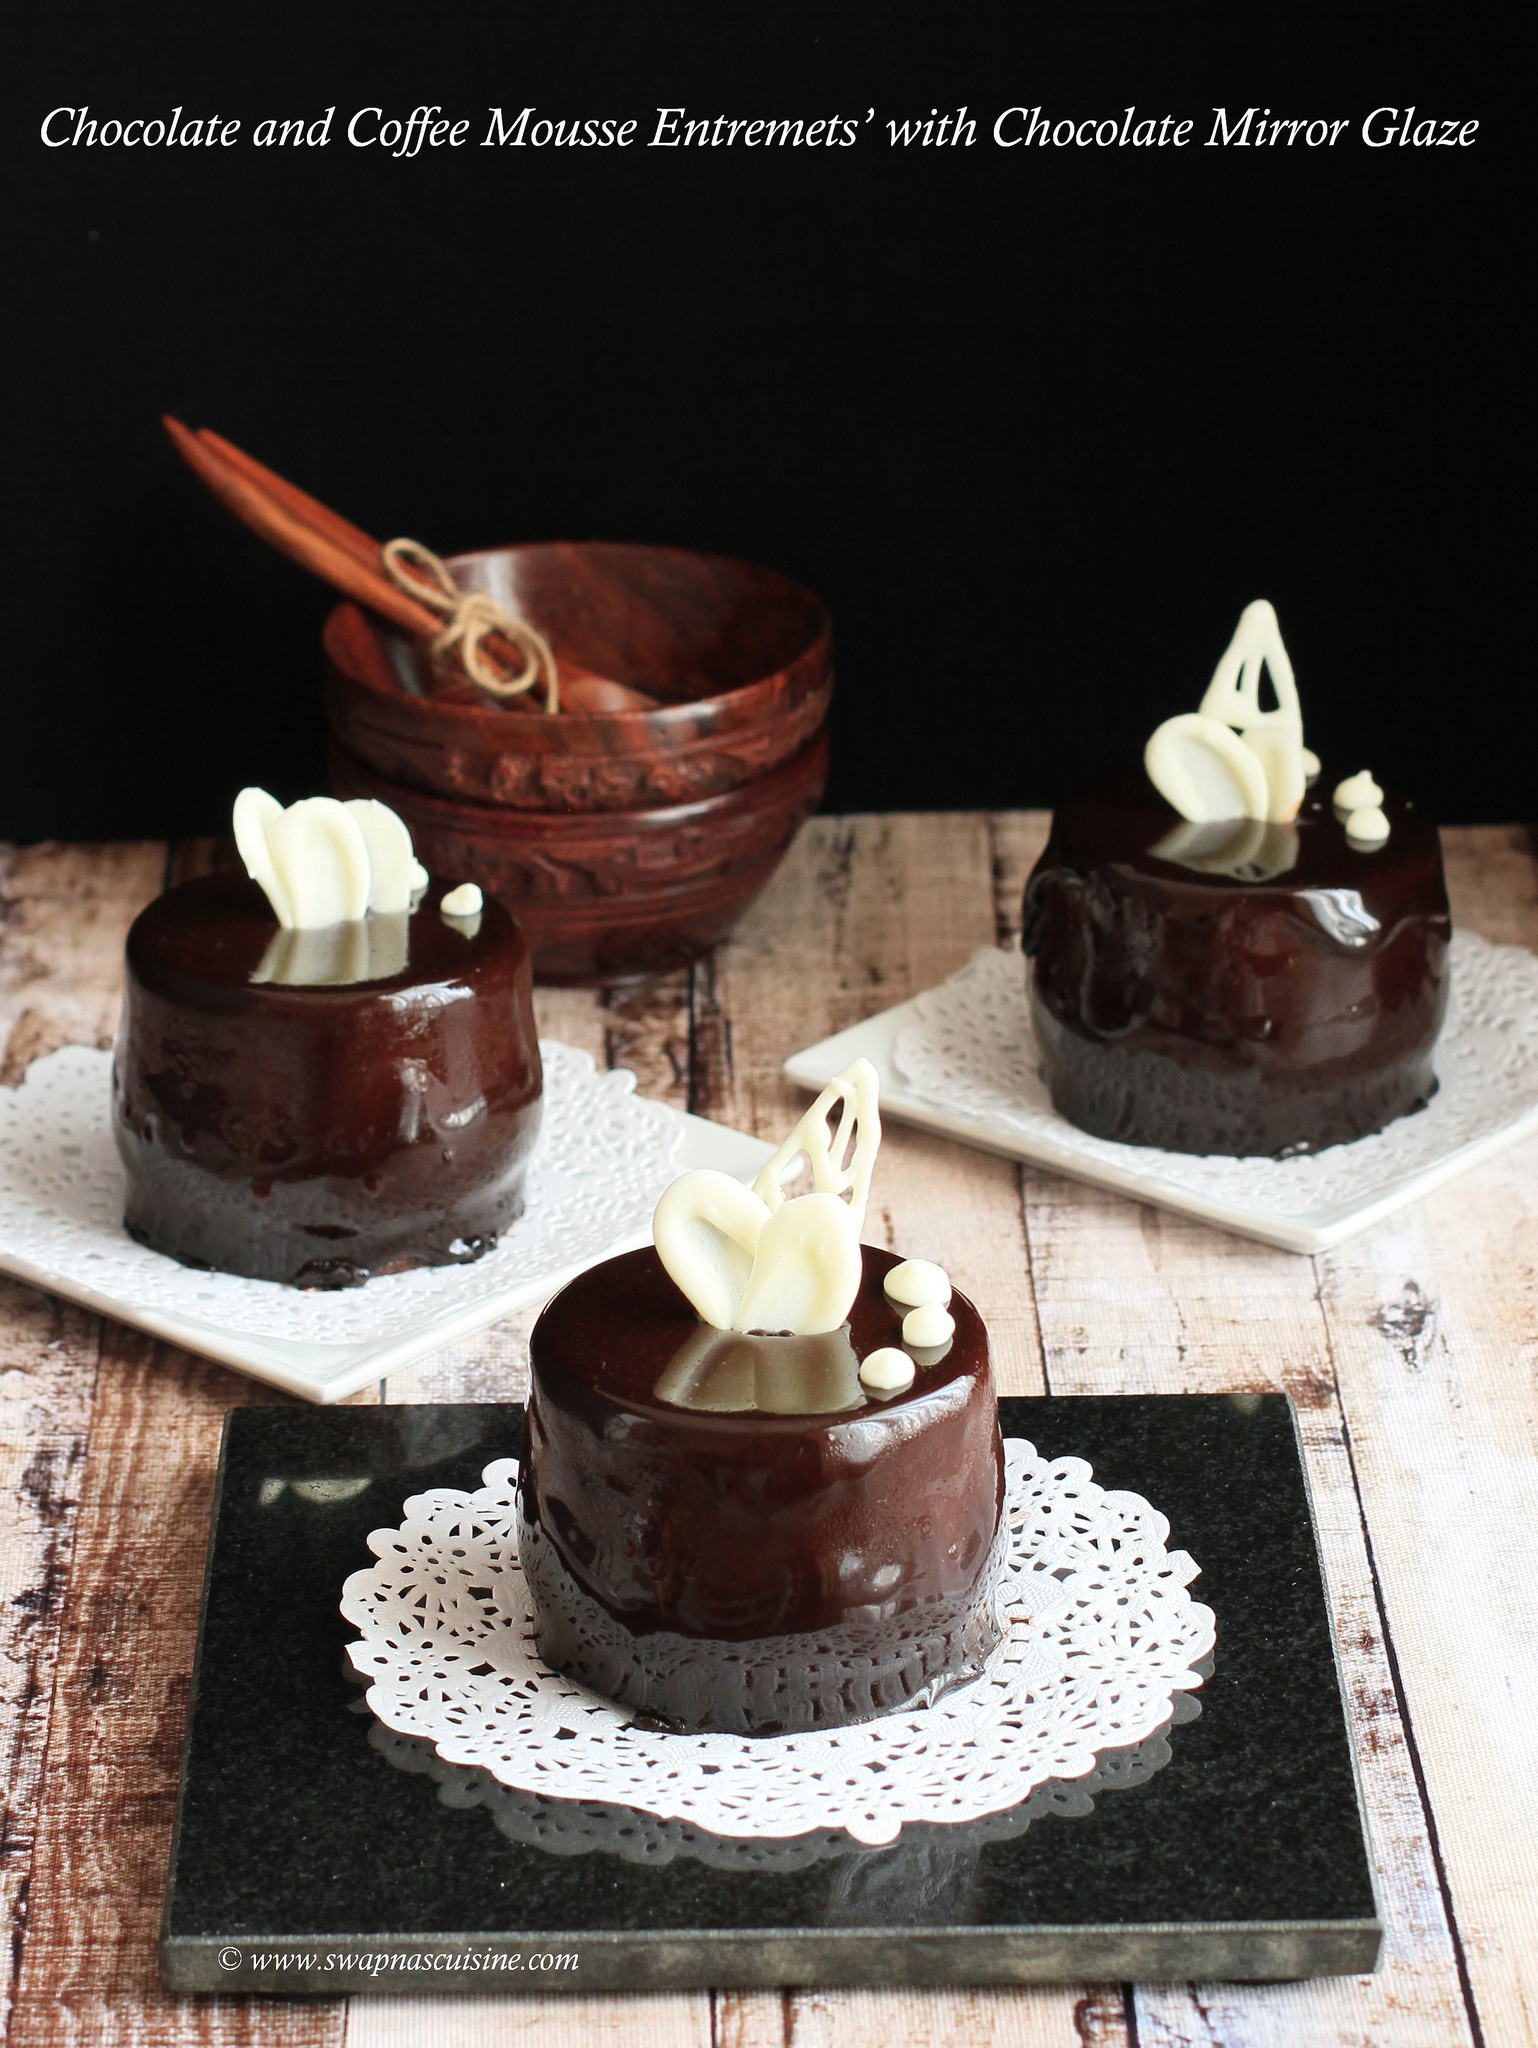 Chocolate and Coffee Mousse Entremets' with Chocolate Mirror Glaze